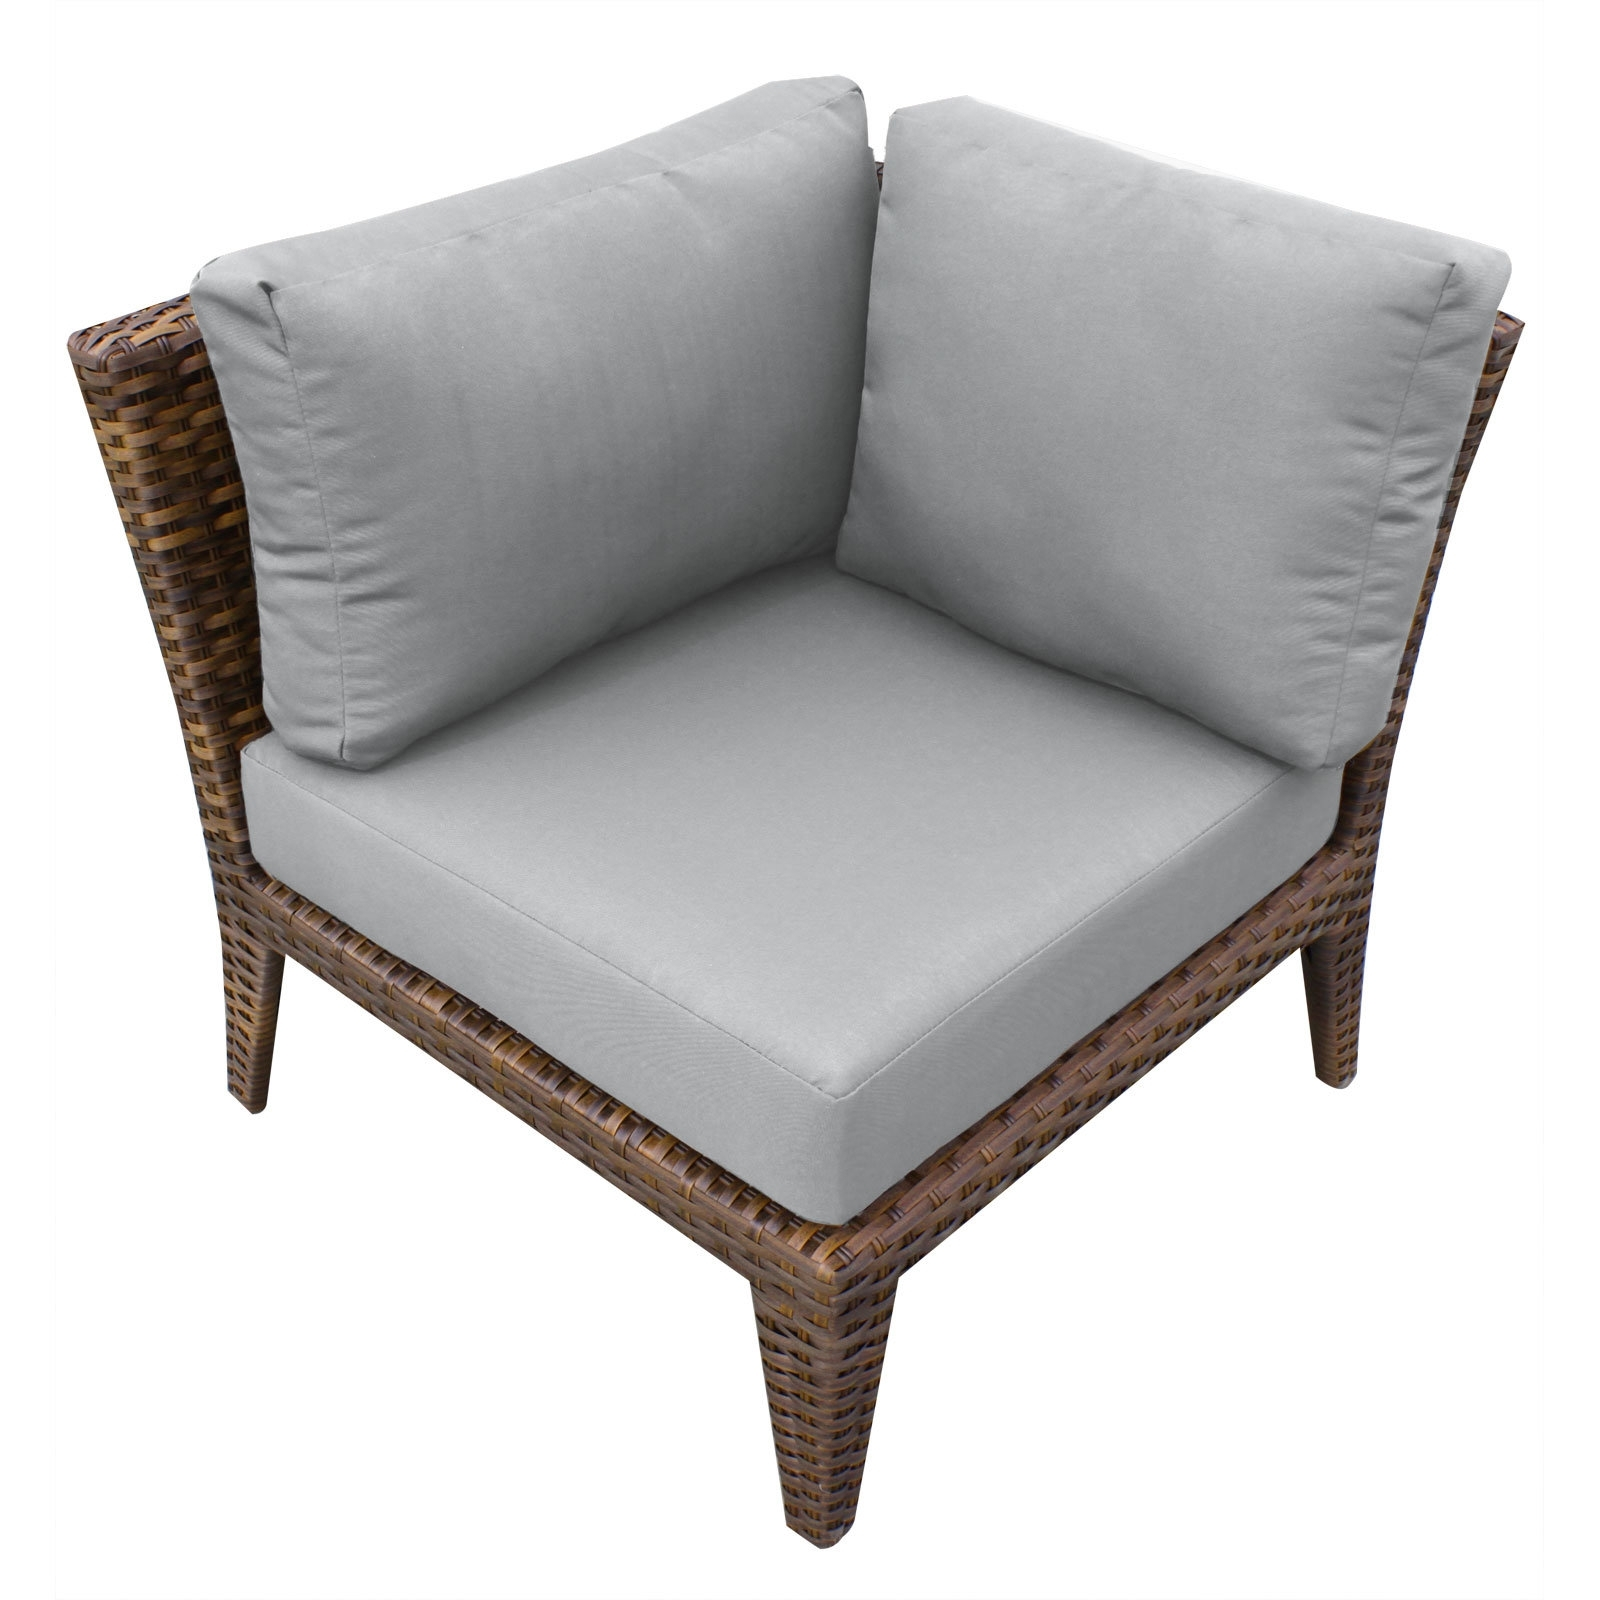 Tk Classics Manhattan Deep Seating Chair With Cushions | Wayfair With Regard To Manhattan Patio Grey Rocking Chairs (View 15 of 15)